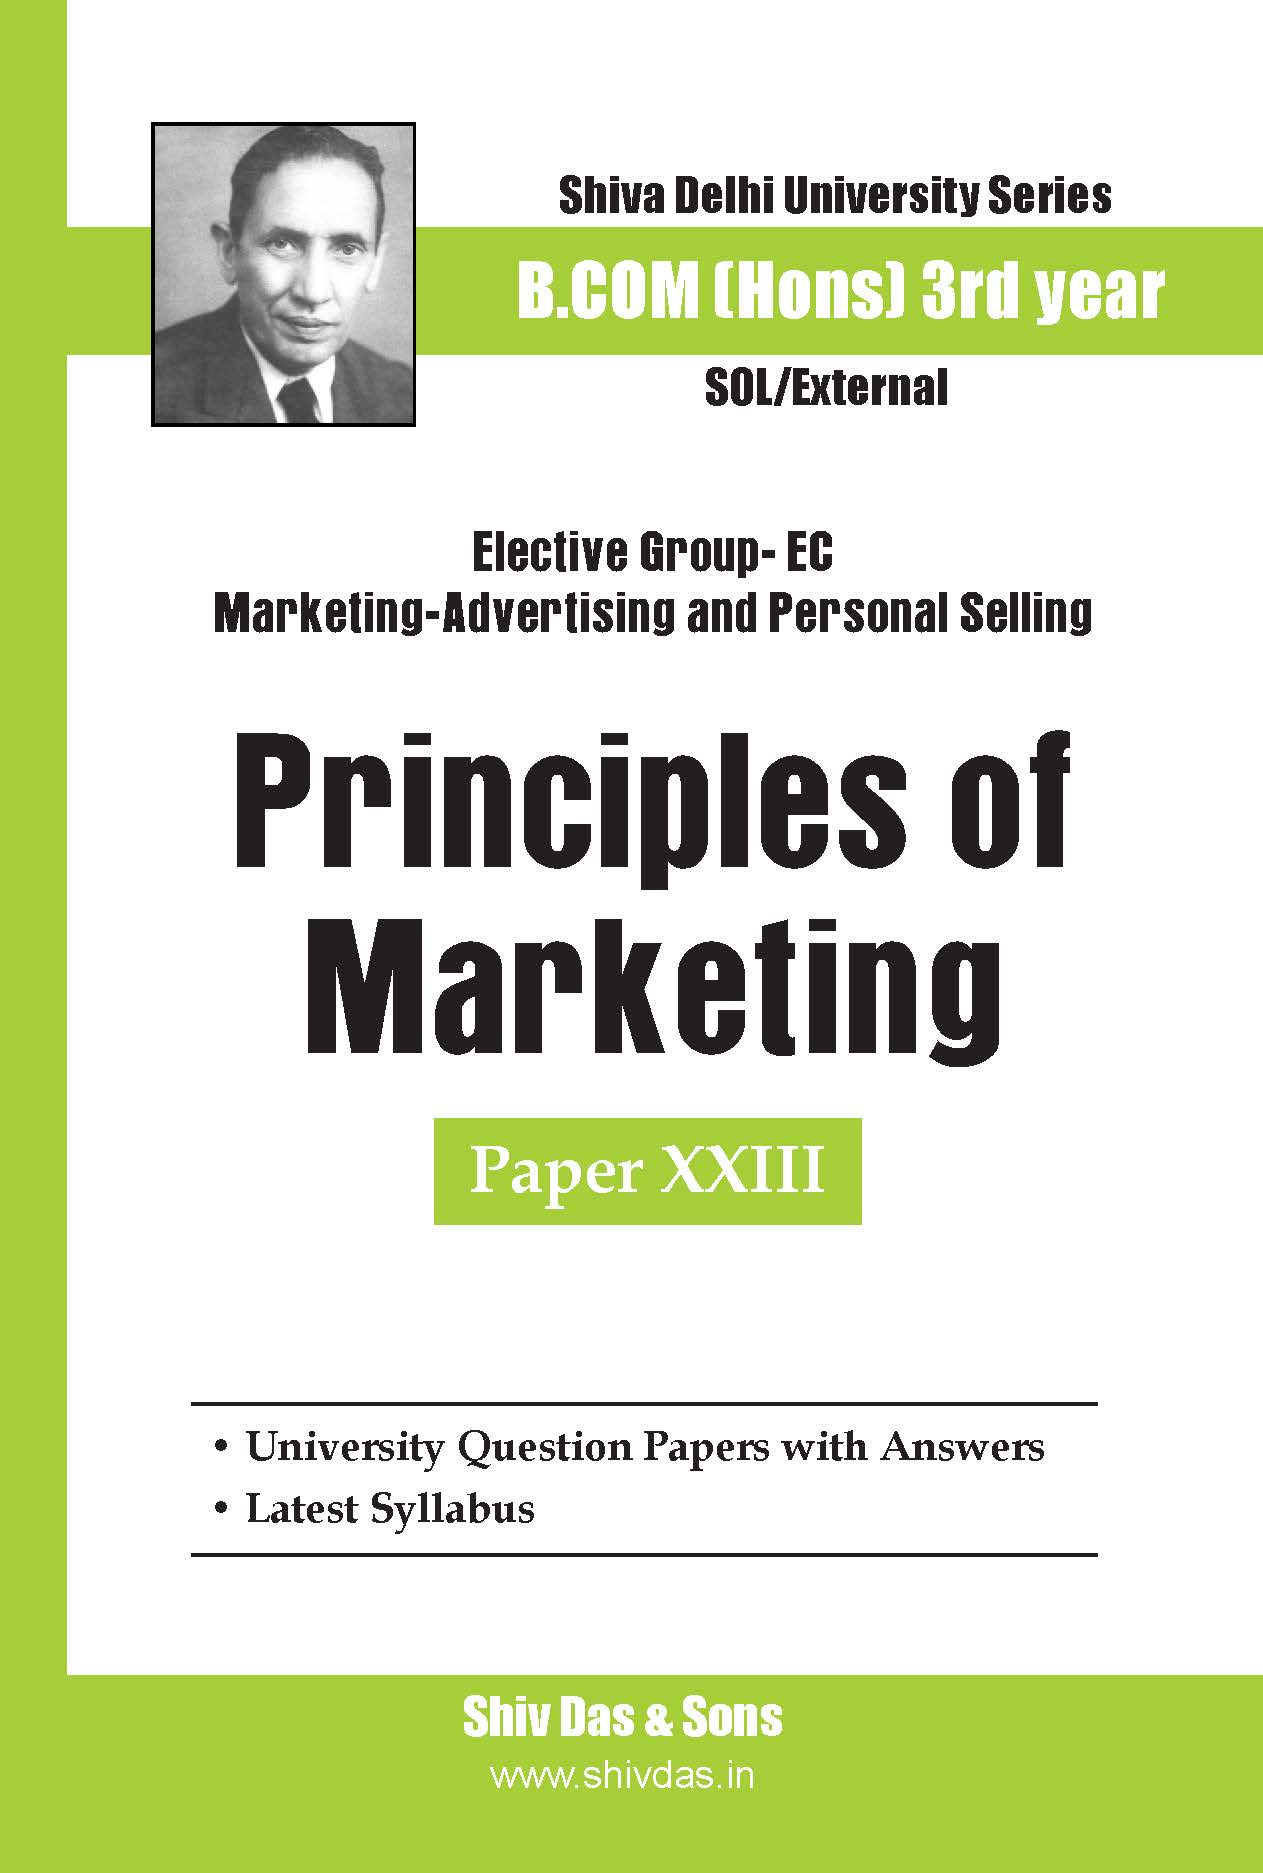 Principles of Marketing for B.Com Hons SOL/External 3rd Year